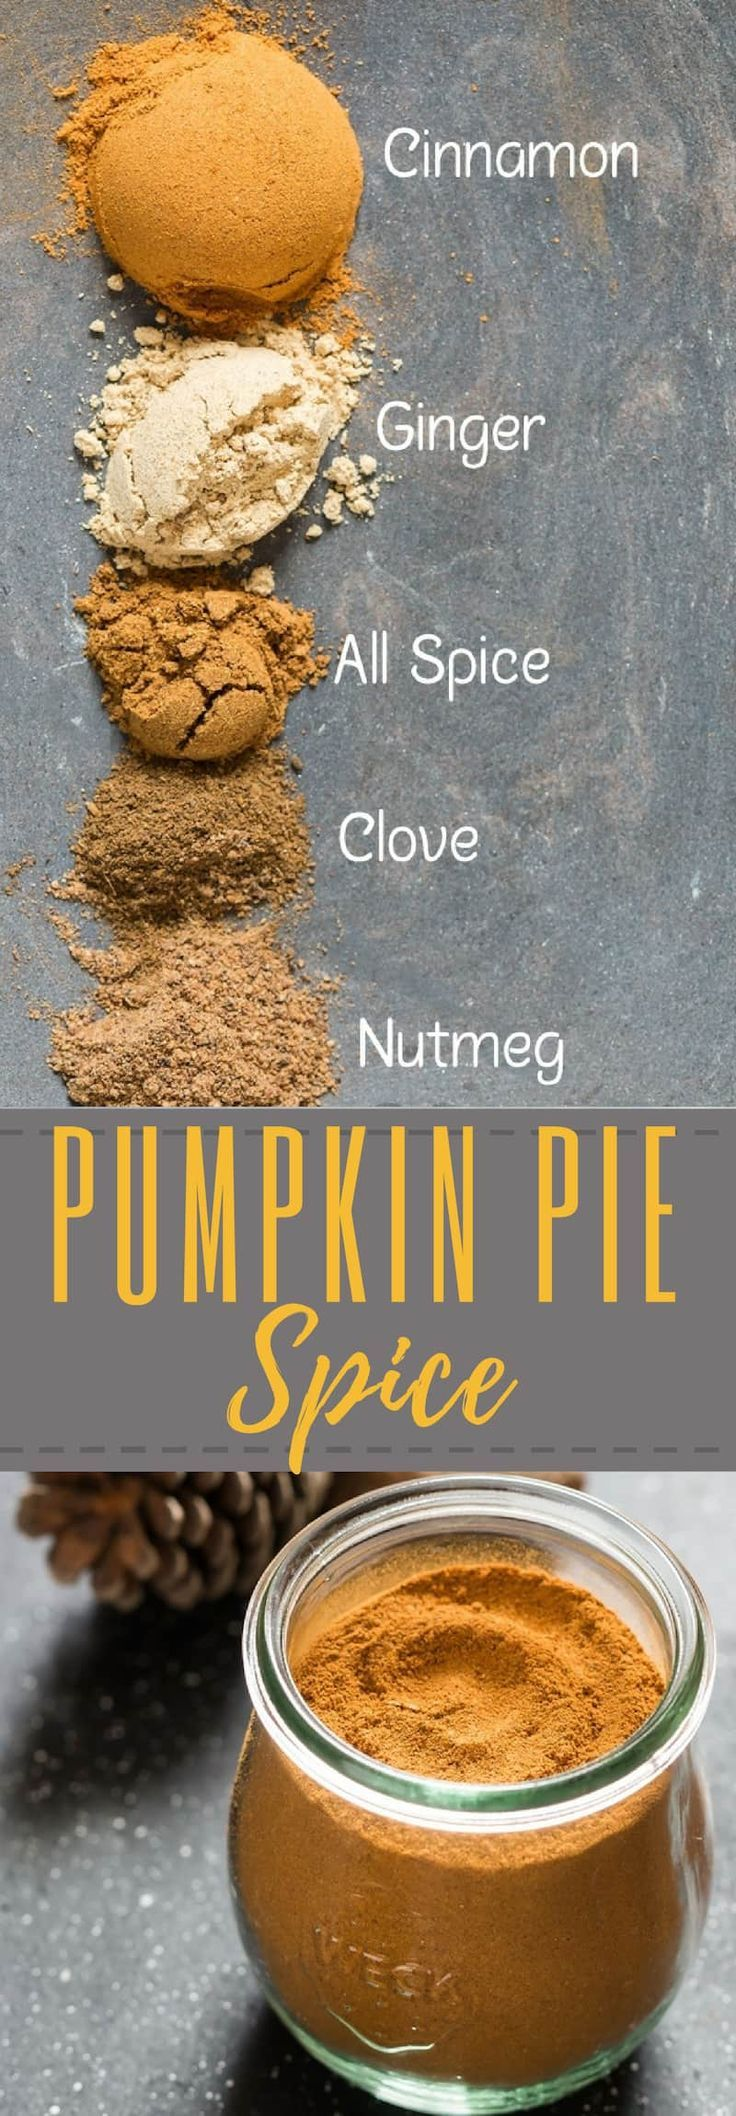 Homemade Pumpkin Pie Spice Recipe - CurryTrail